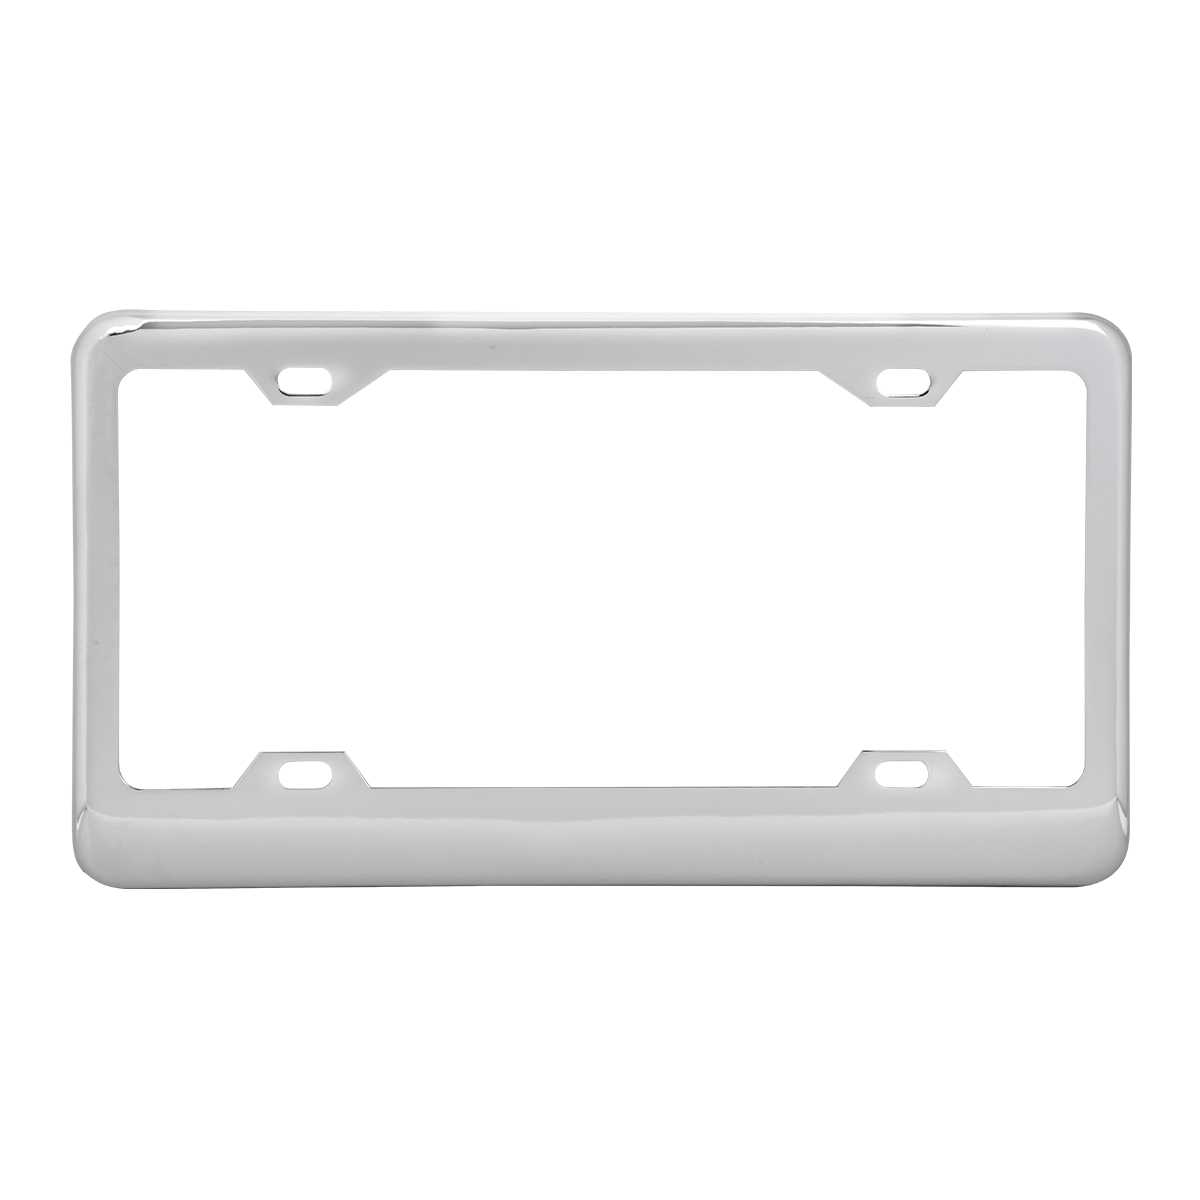 60050 Classic Chrome Plastic Steel 4-Hole License Plate Frames